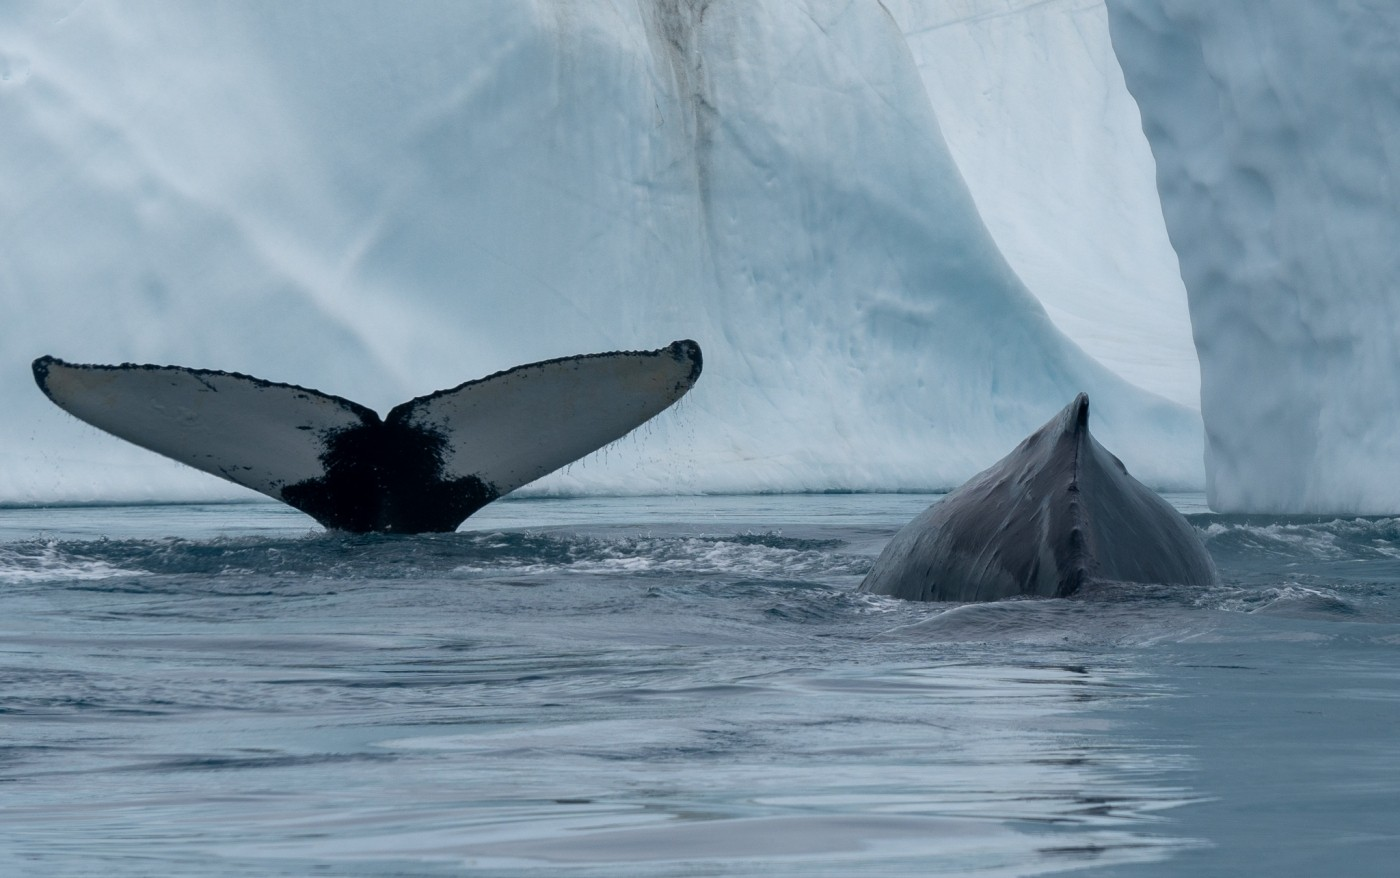 Two whales surfacing between icebergs. Photo by Greenland Fiord Tours